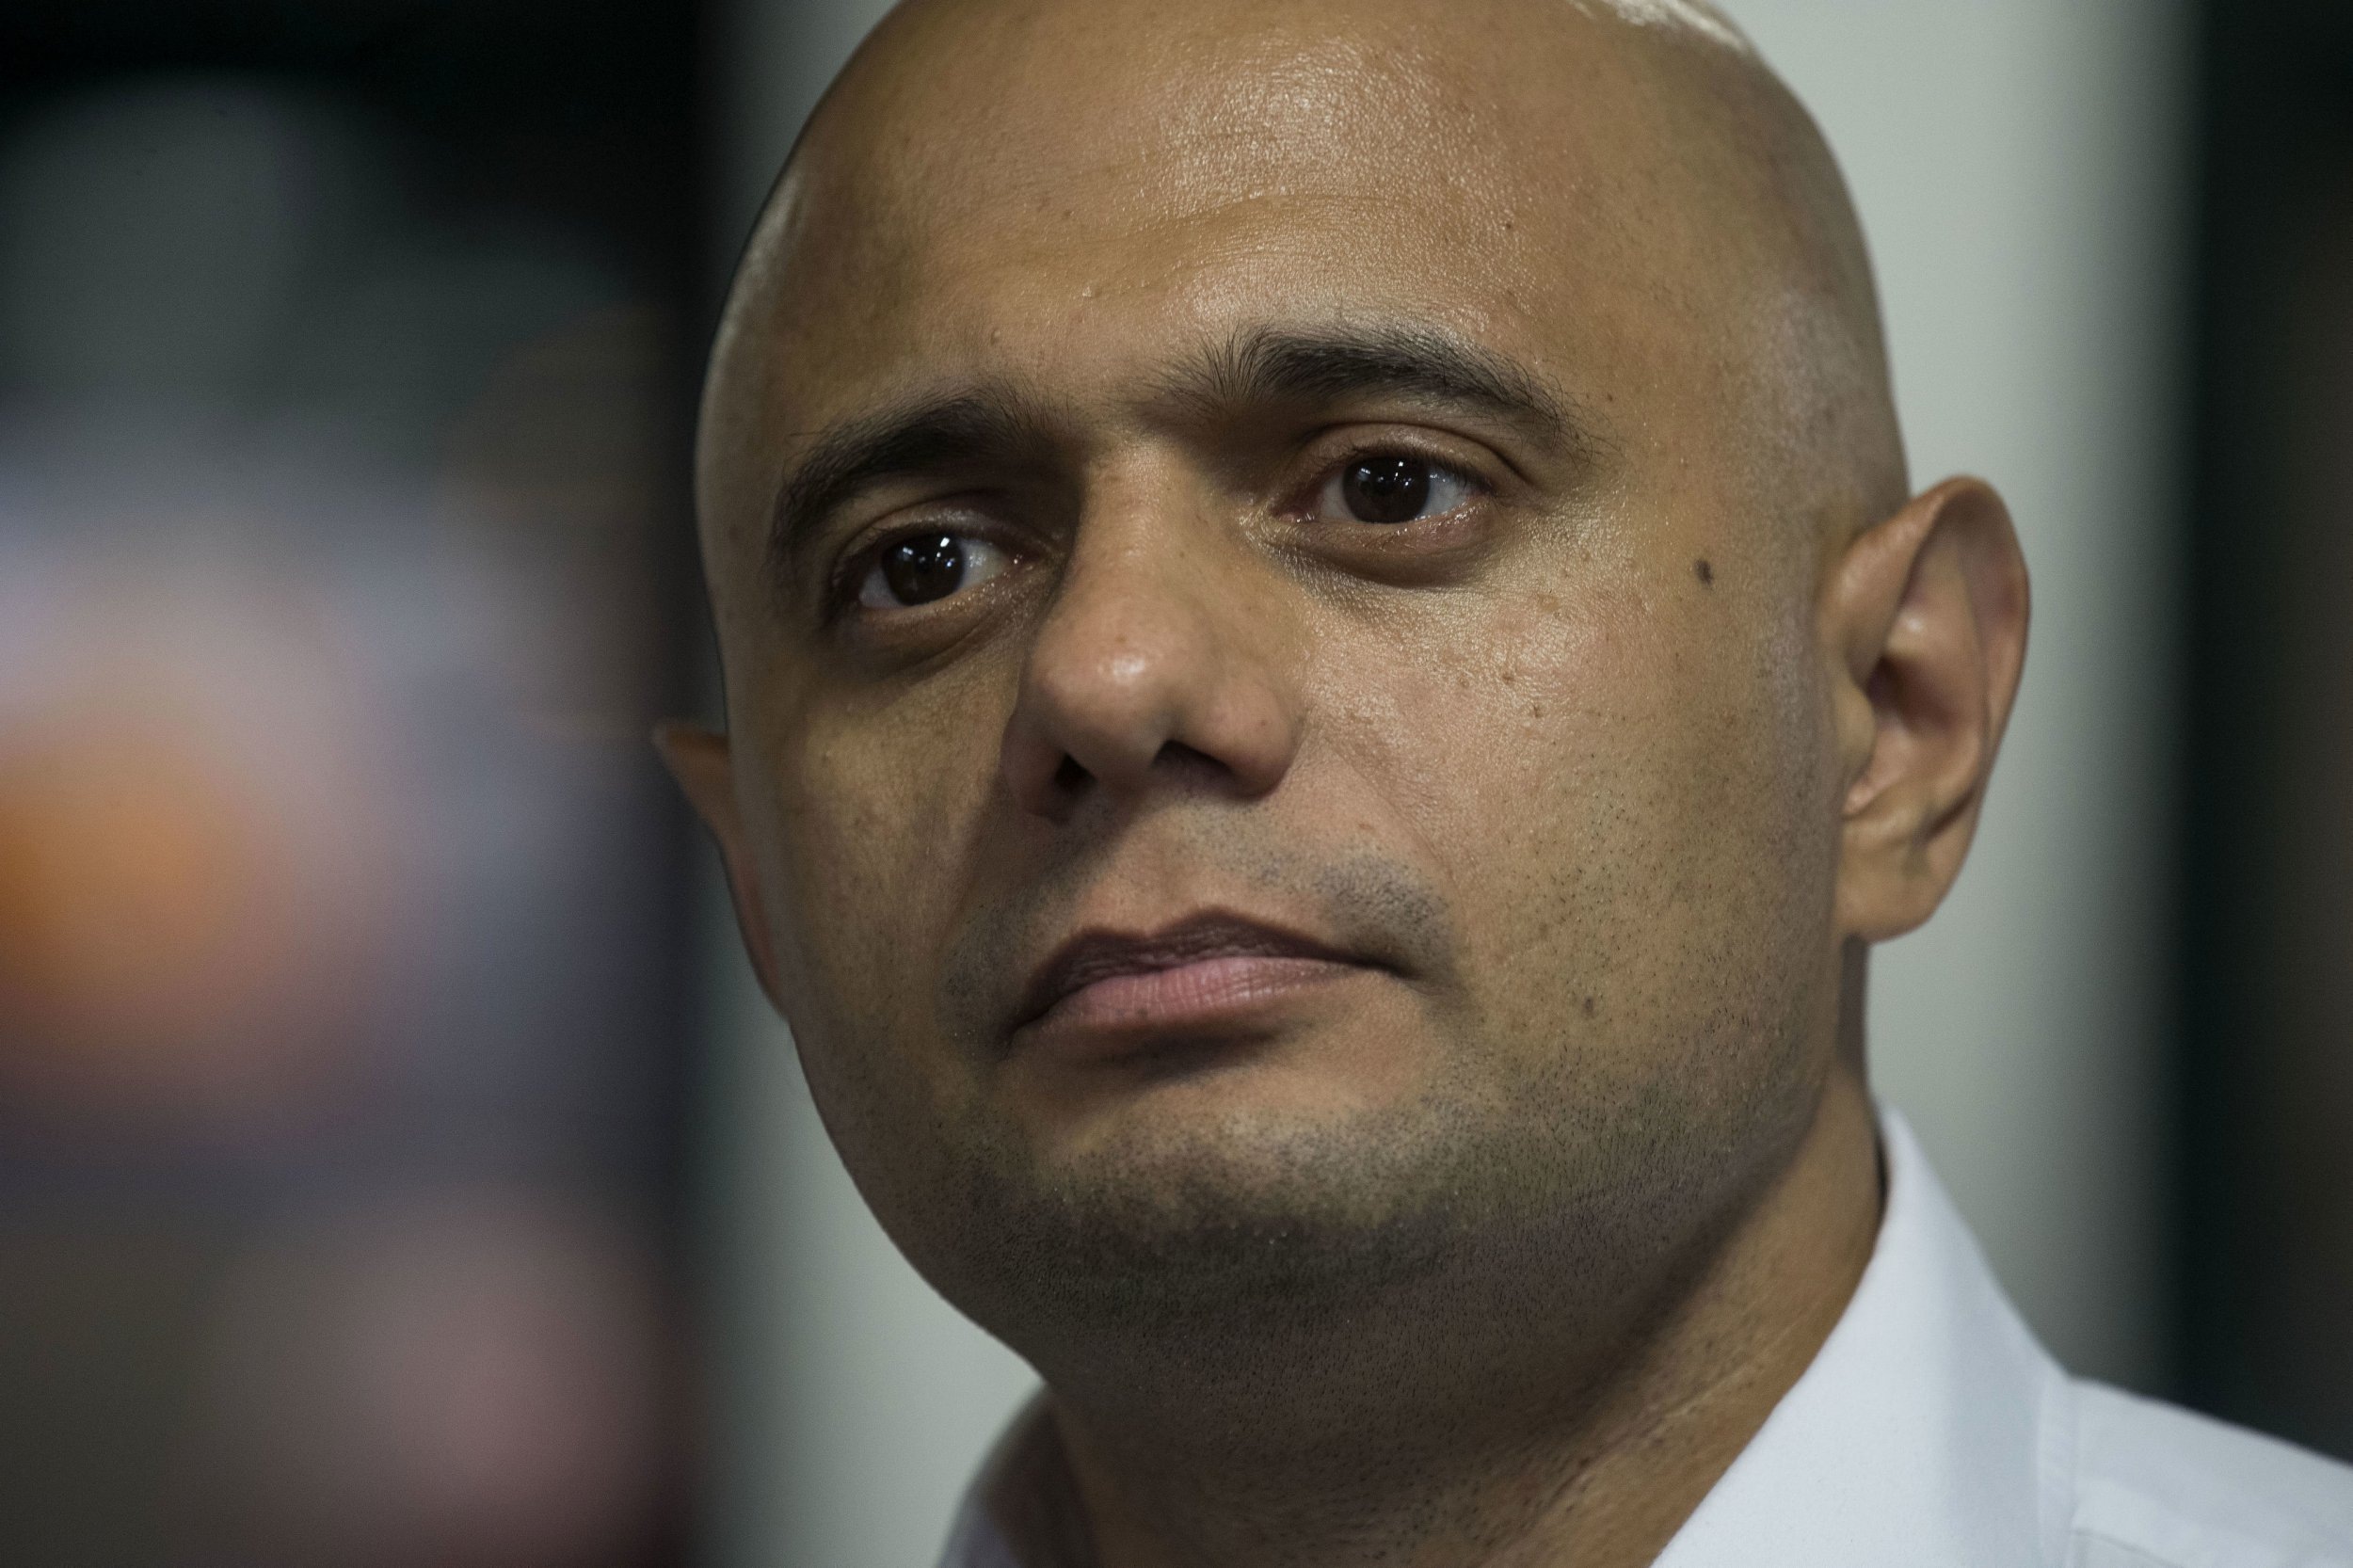 File photo dated 18/06/18 of Home Secretary Sajid Javid. An inquest heard that his eldest brother Tariq drowned at a five-star hotel. PRESS ASSOCIATION Photo. Issue date: Tuesday September 11, 2018. See PA story INQUEST Javid. Photo credit should read: Victoria Jones/PA Wire